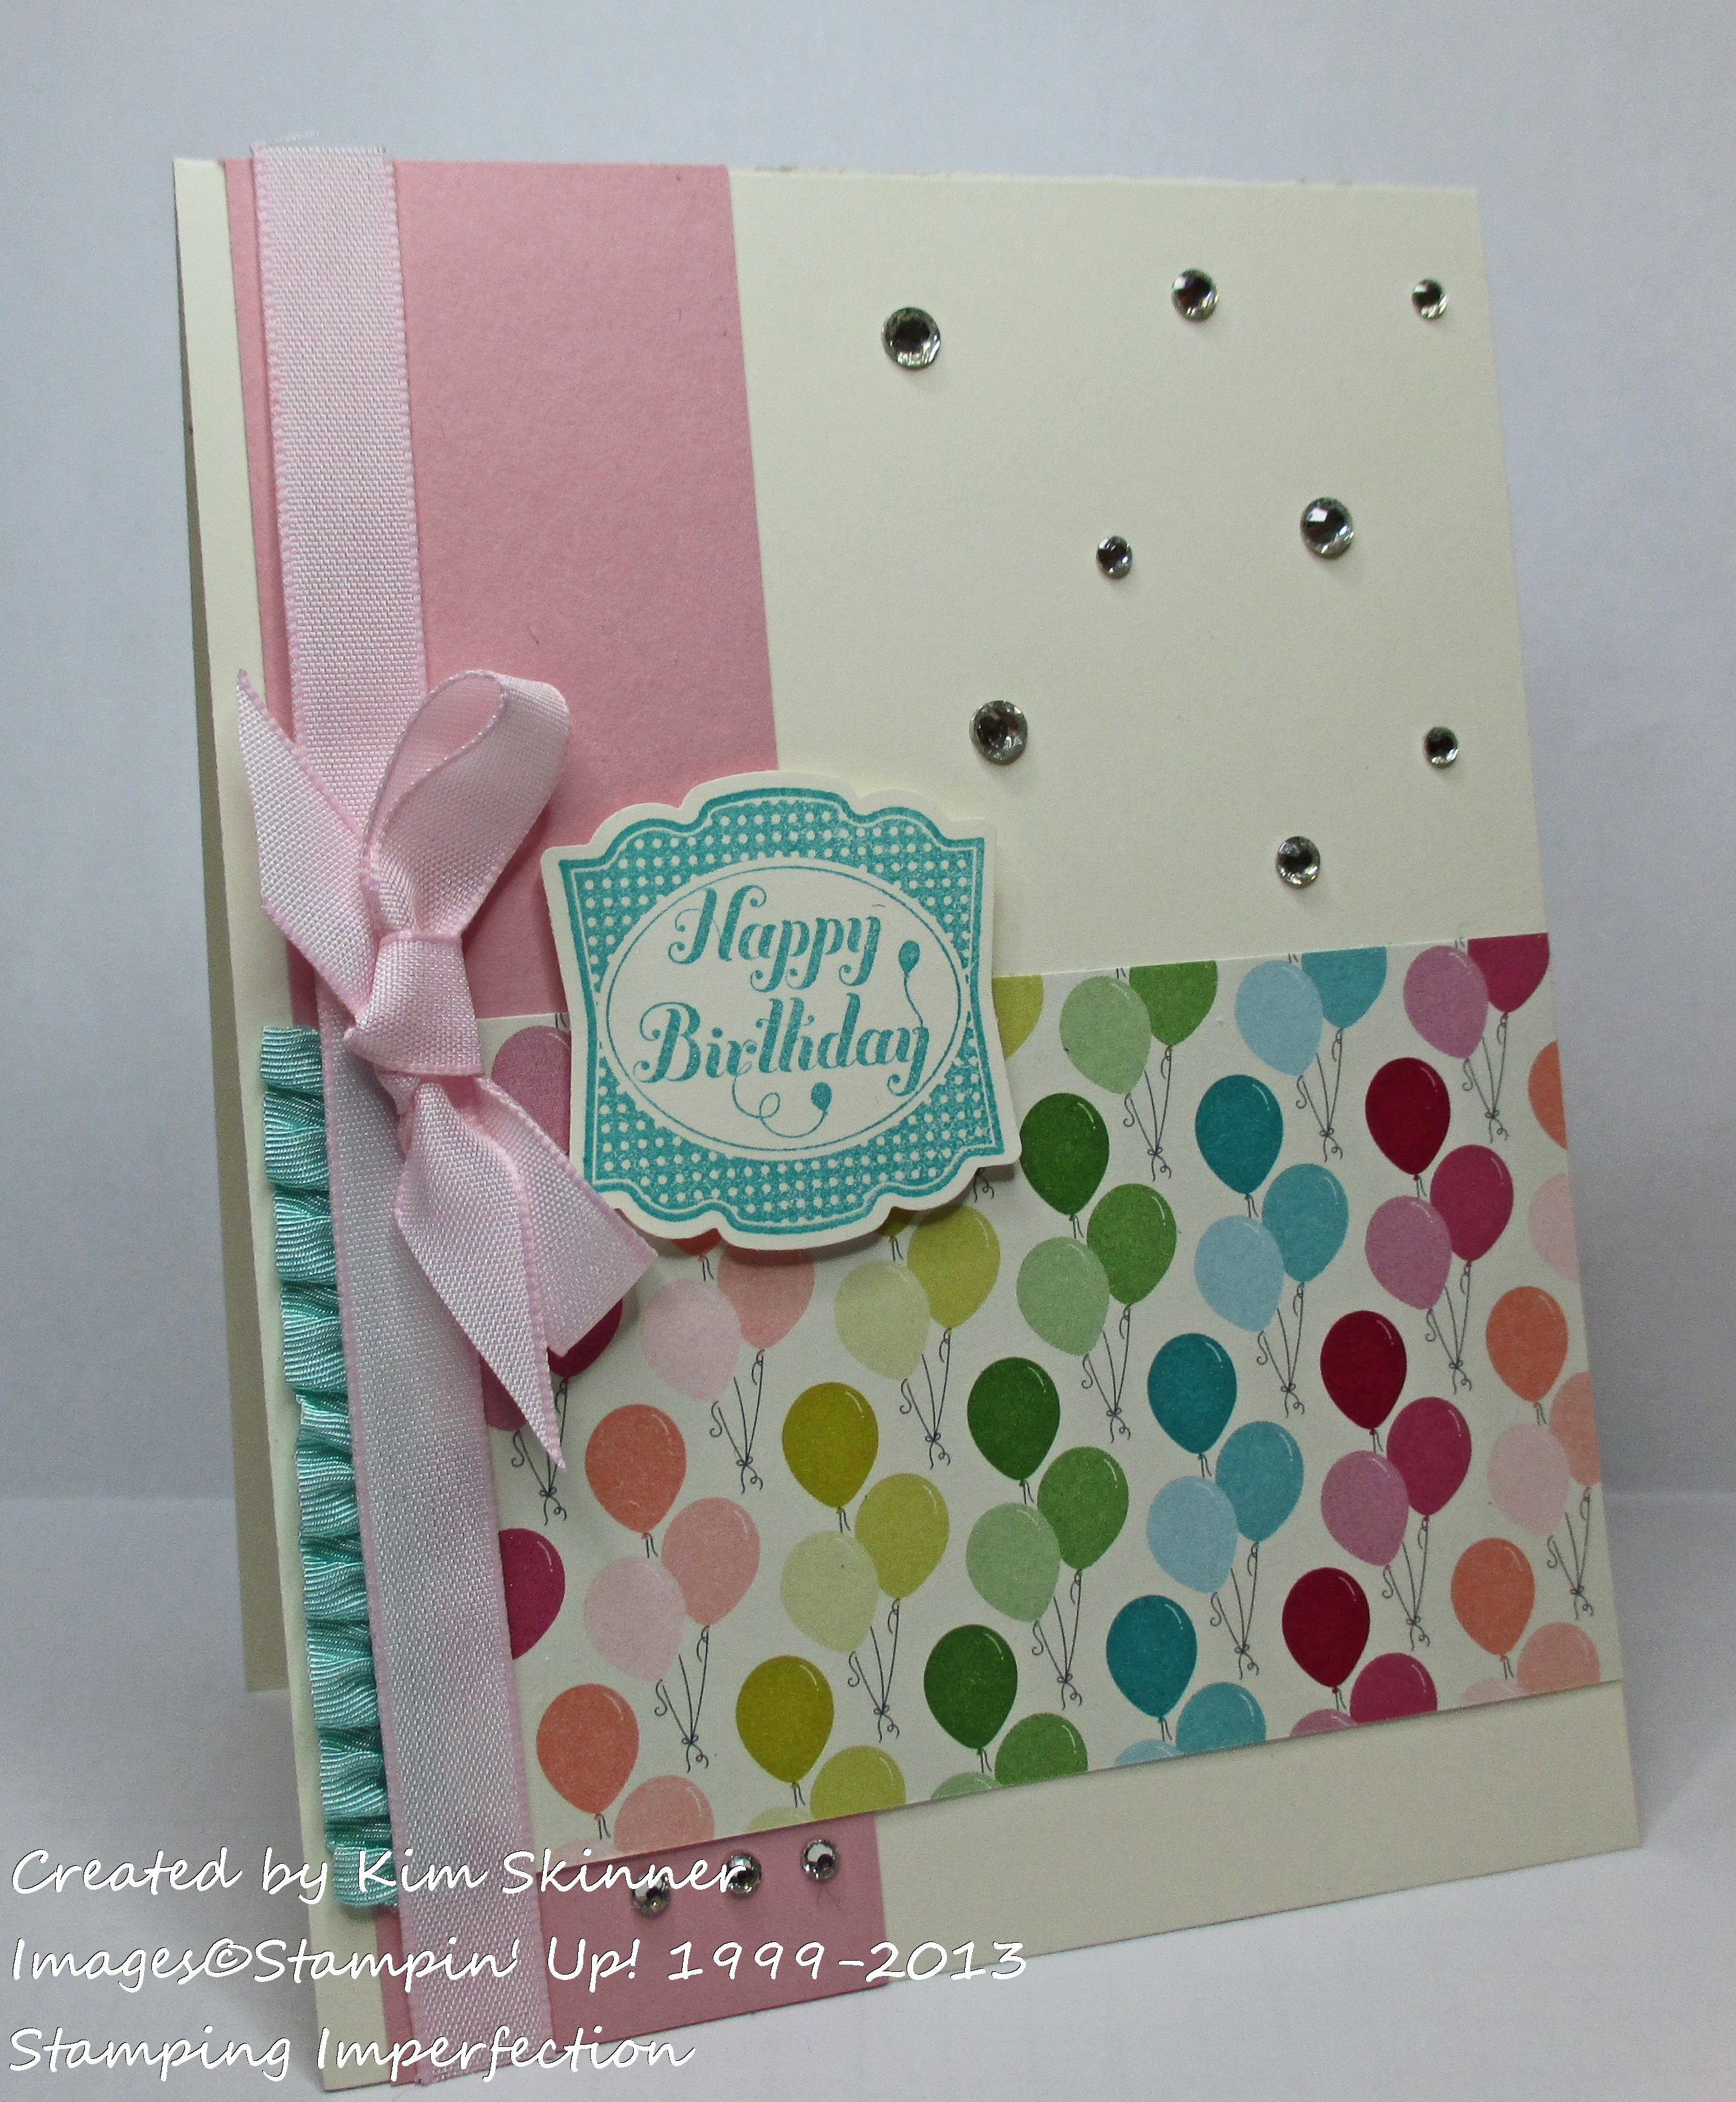 Stamping Imperfection 3 card elements